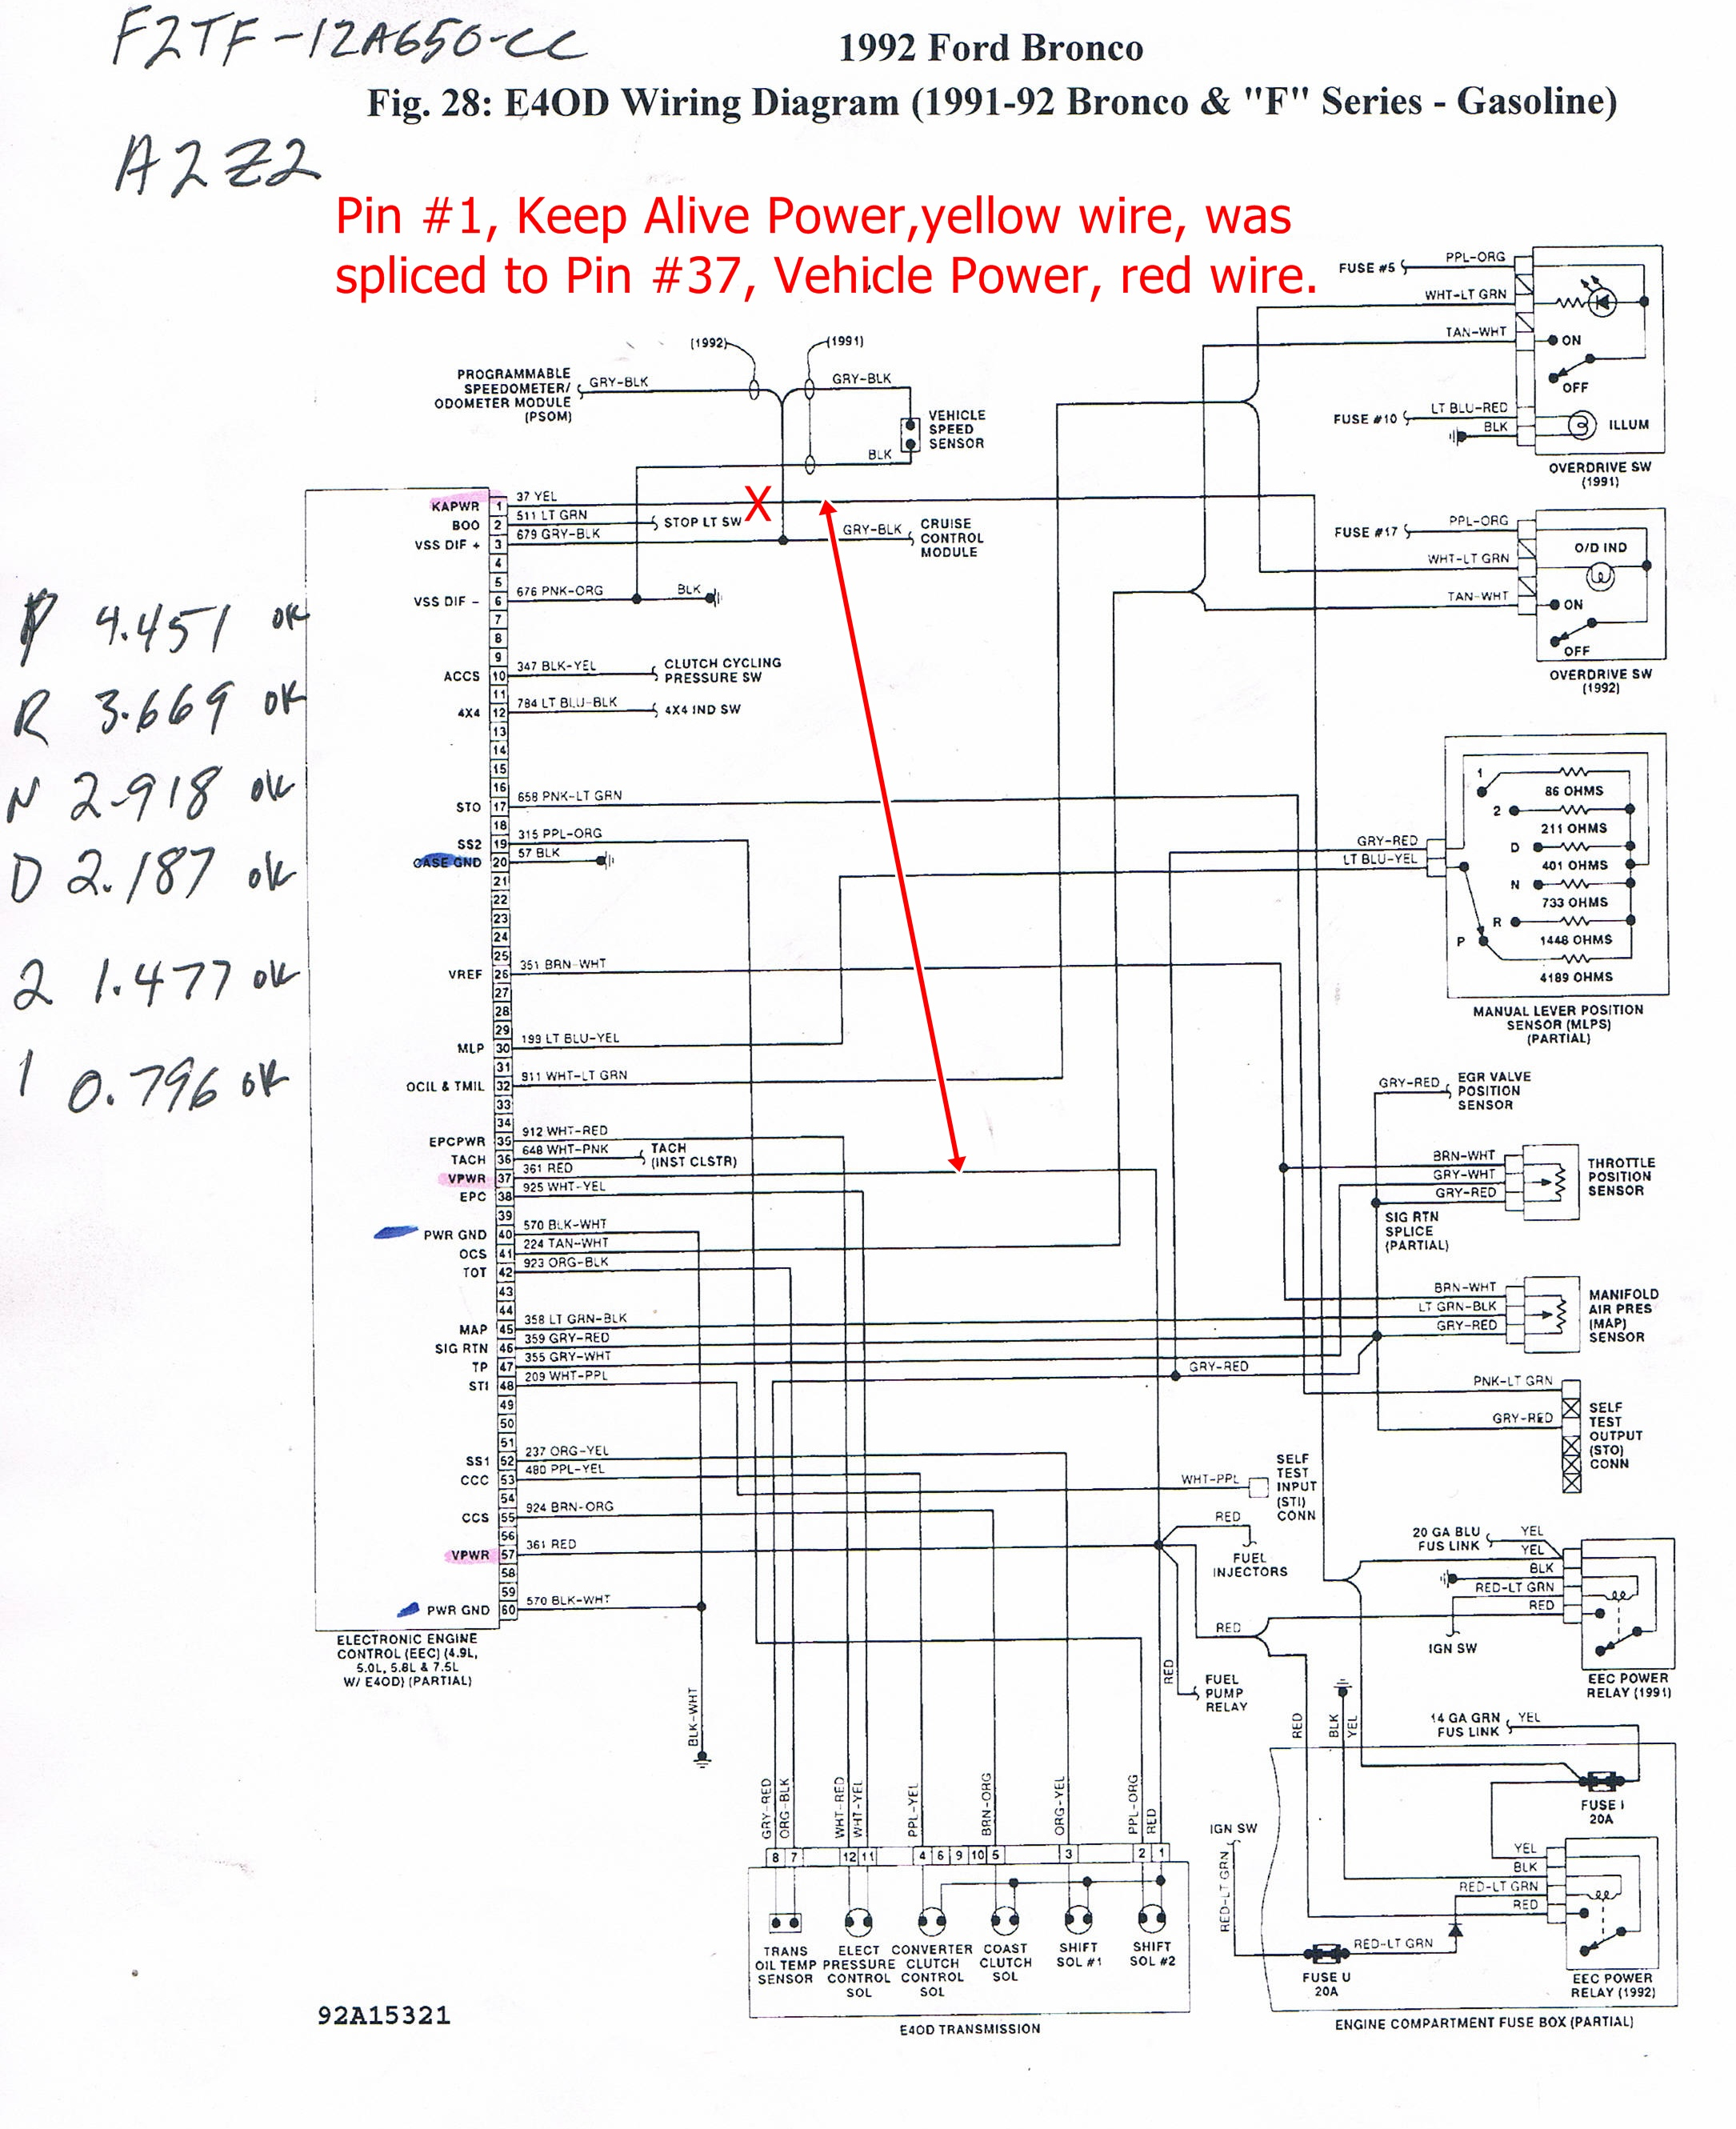 300 Gm Vss Wiring Bookmark About Diagram 2001 Chevy Silverado Knock Sensor 99 Harness Online Rh 18 20 8 Tokyo Running Sushi De Speed Location Transmission